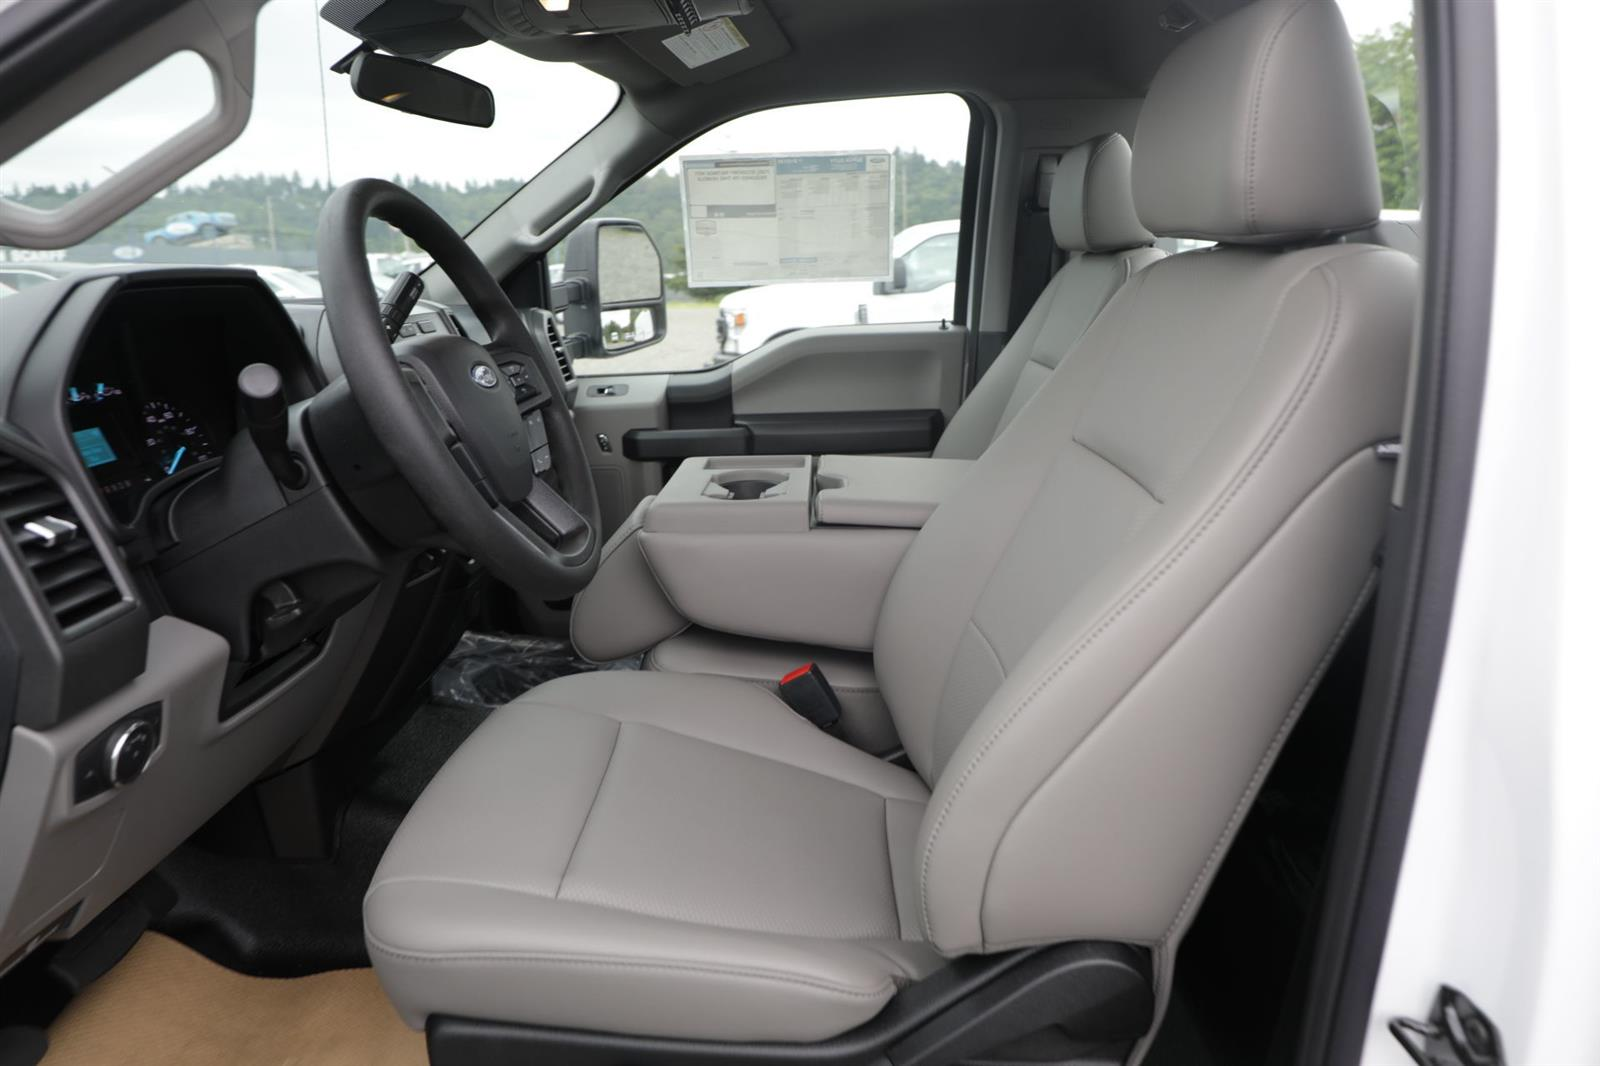 2020 Ford F-350 Regular Cab DRW 4x2, Cab Chassis #E9326 - photo 15